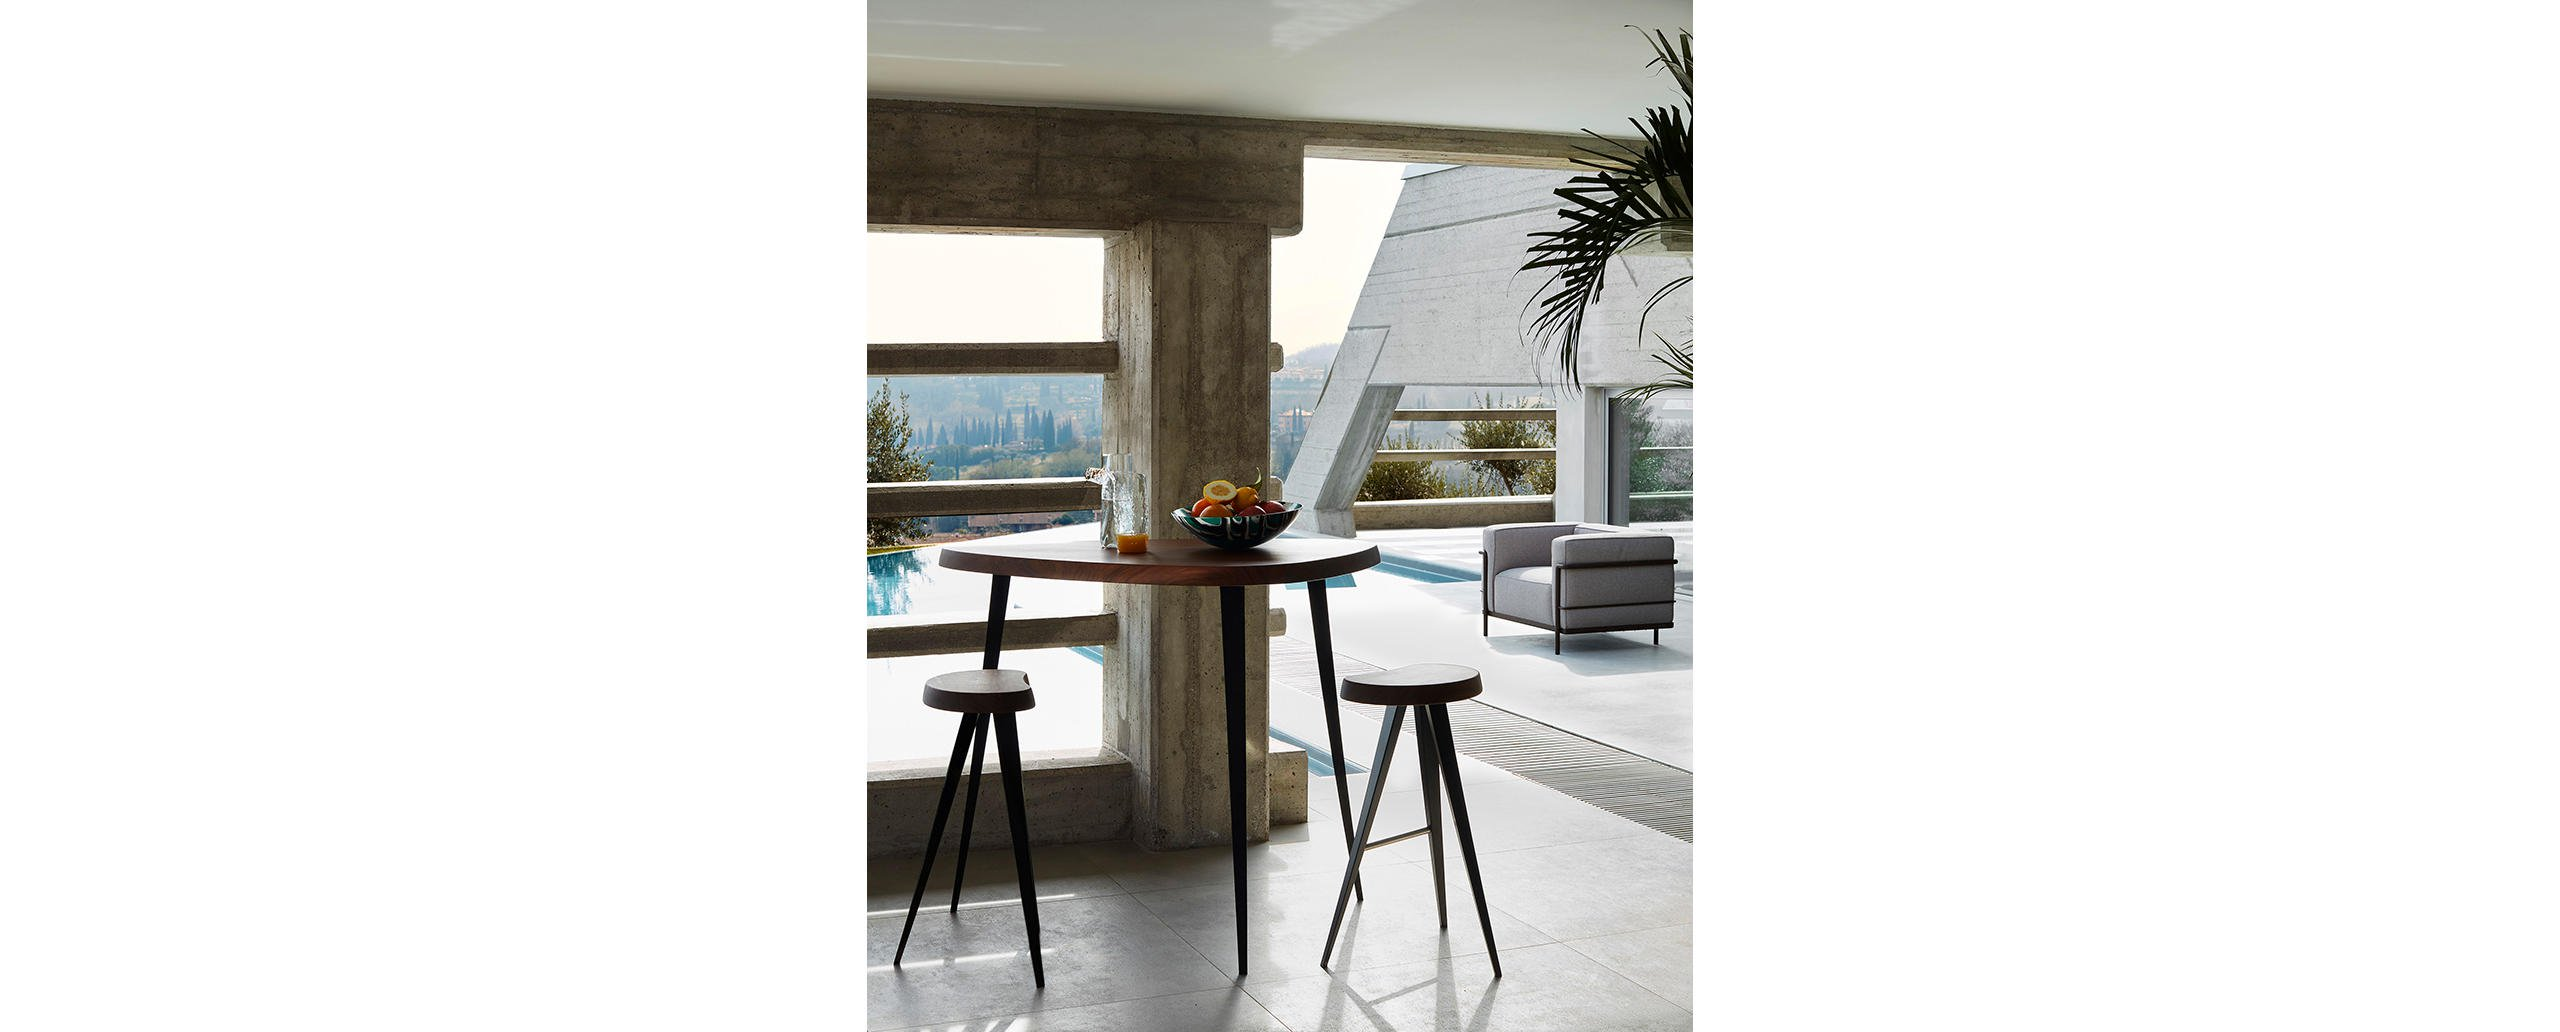 3_cassina_mexique_charlotte_perriand_bar_stool_and_table_photodepasqualemaffini